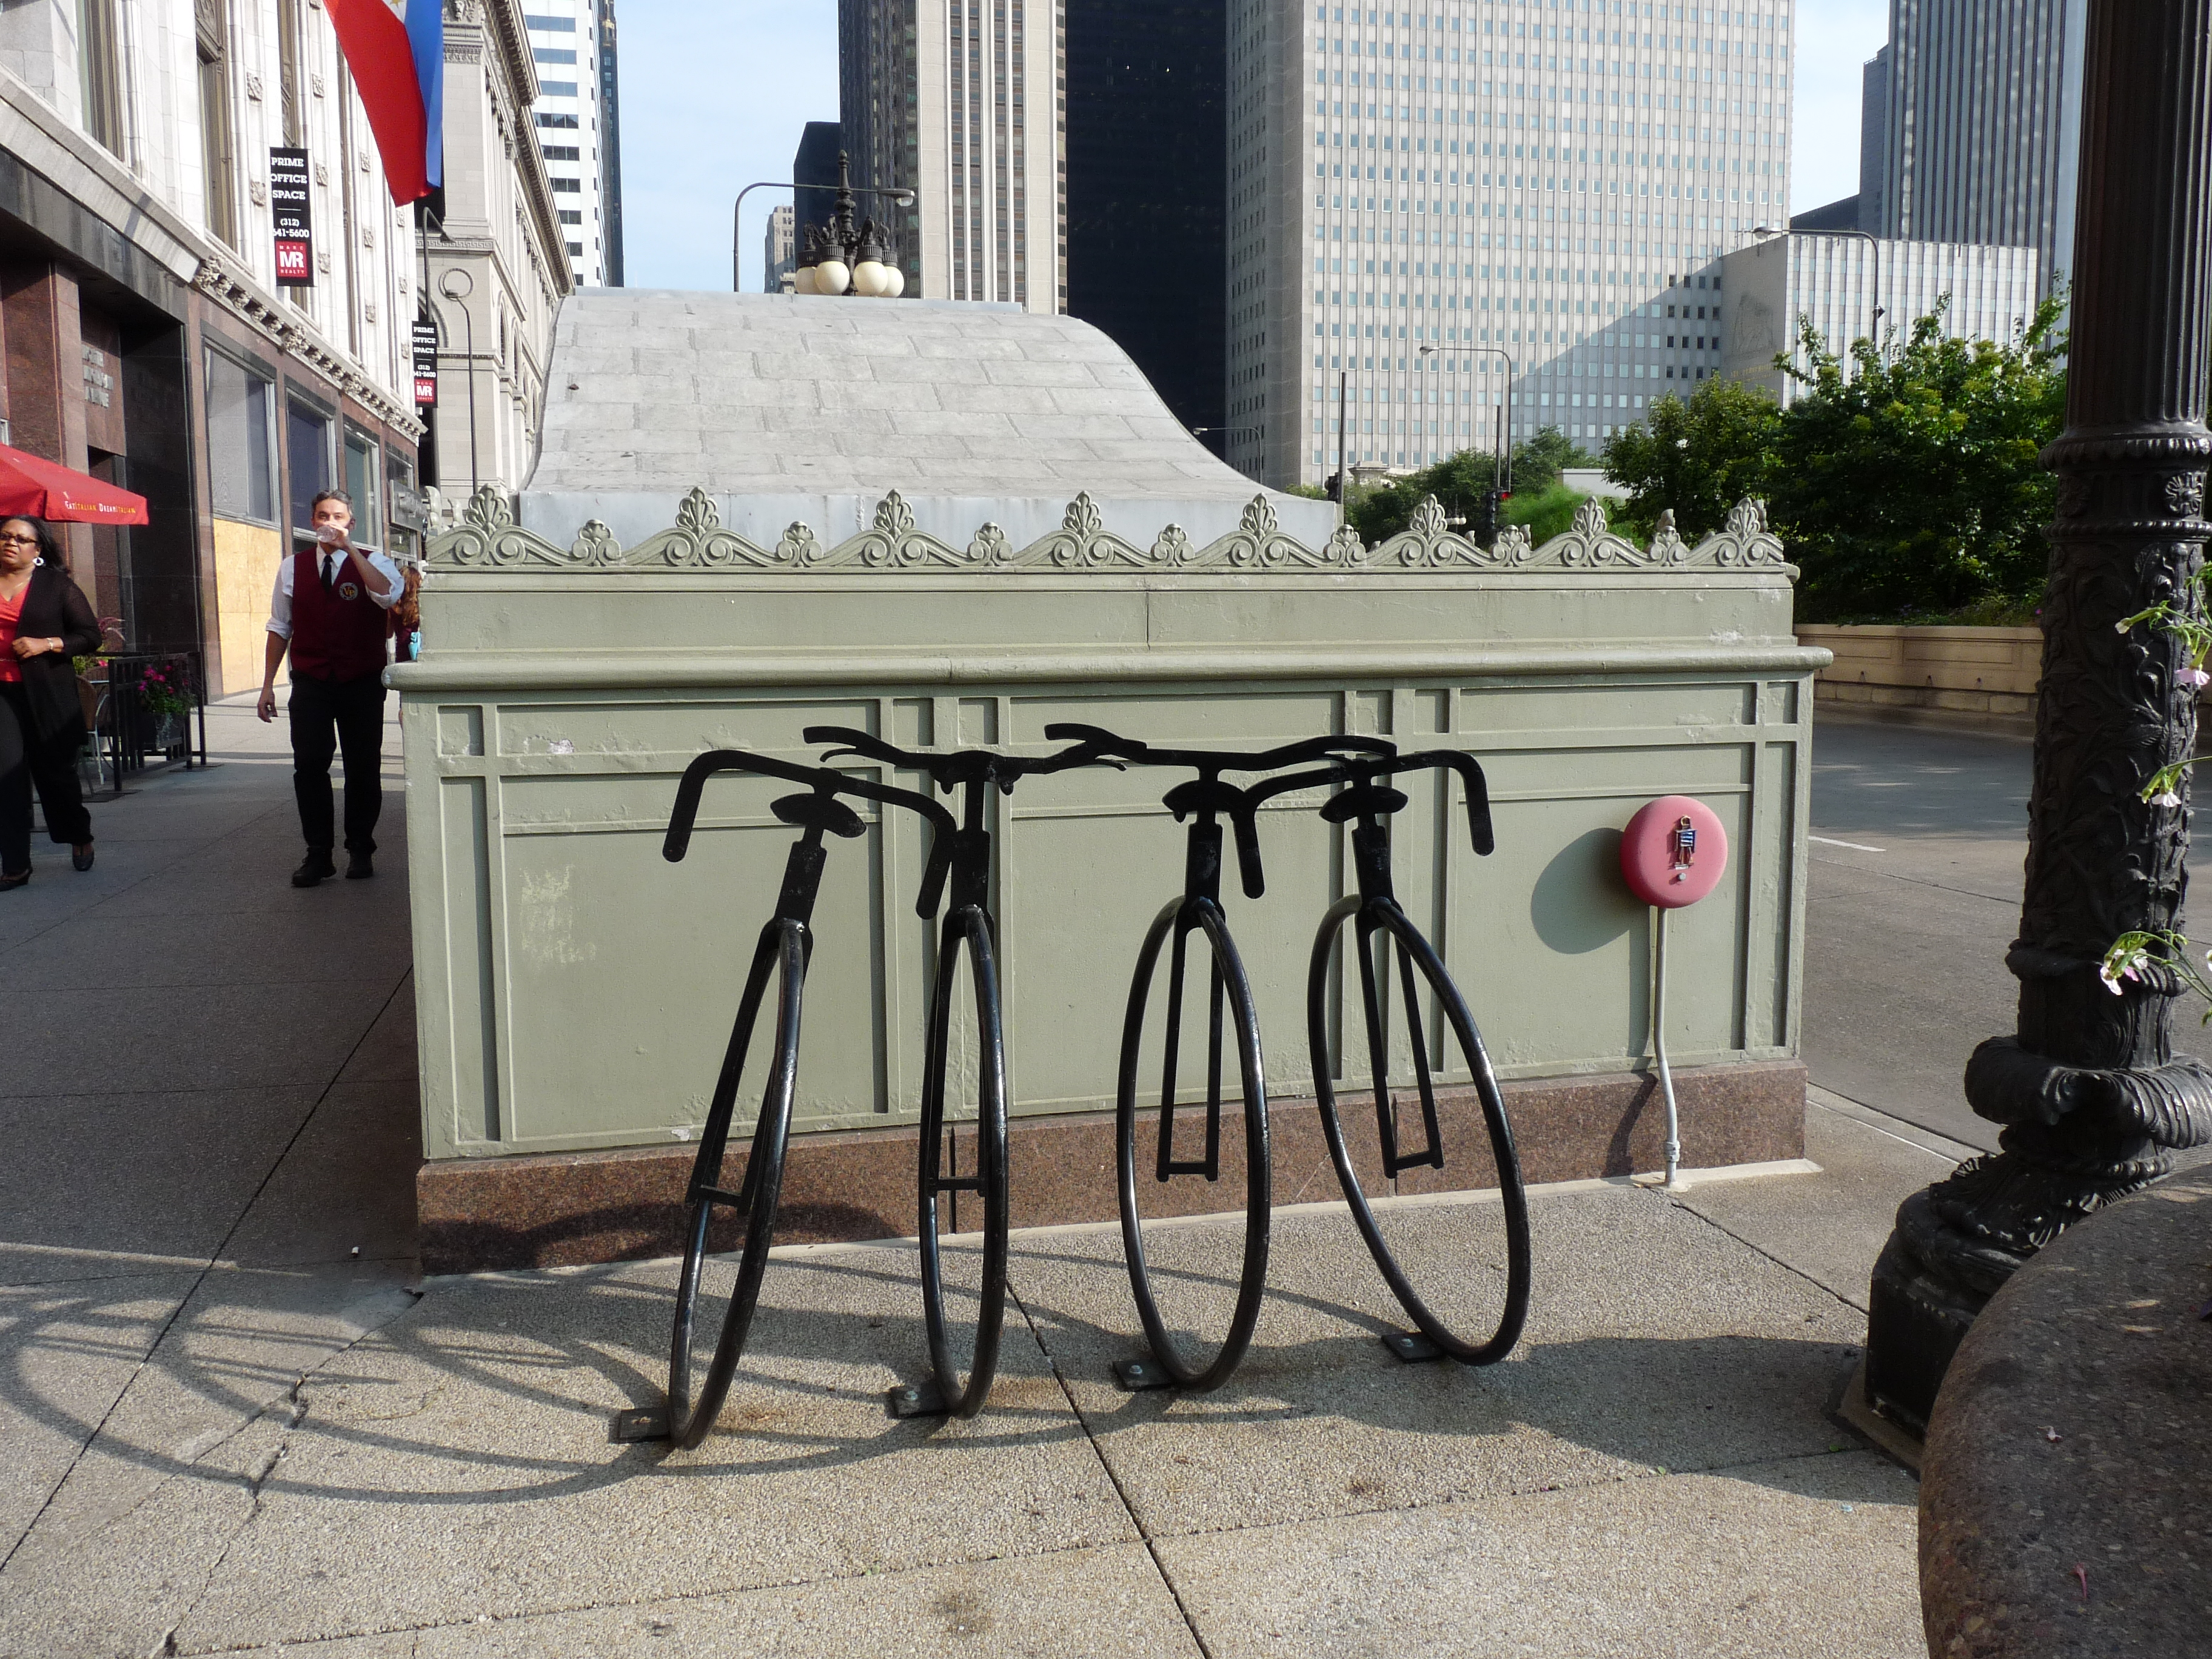 Bike rack project in Chicago, Il.